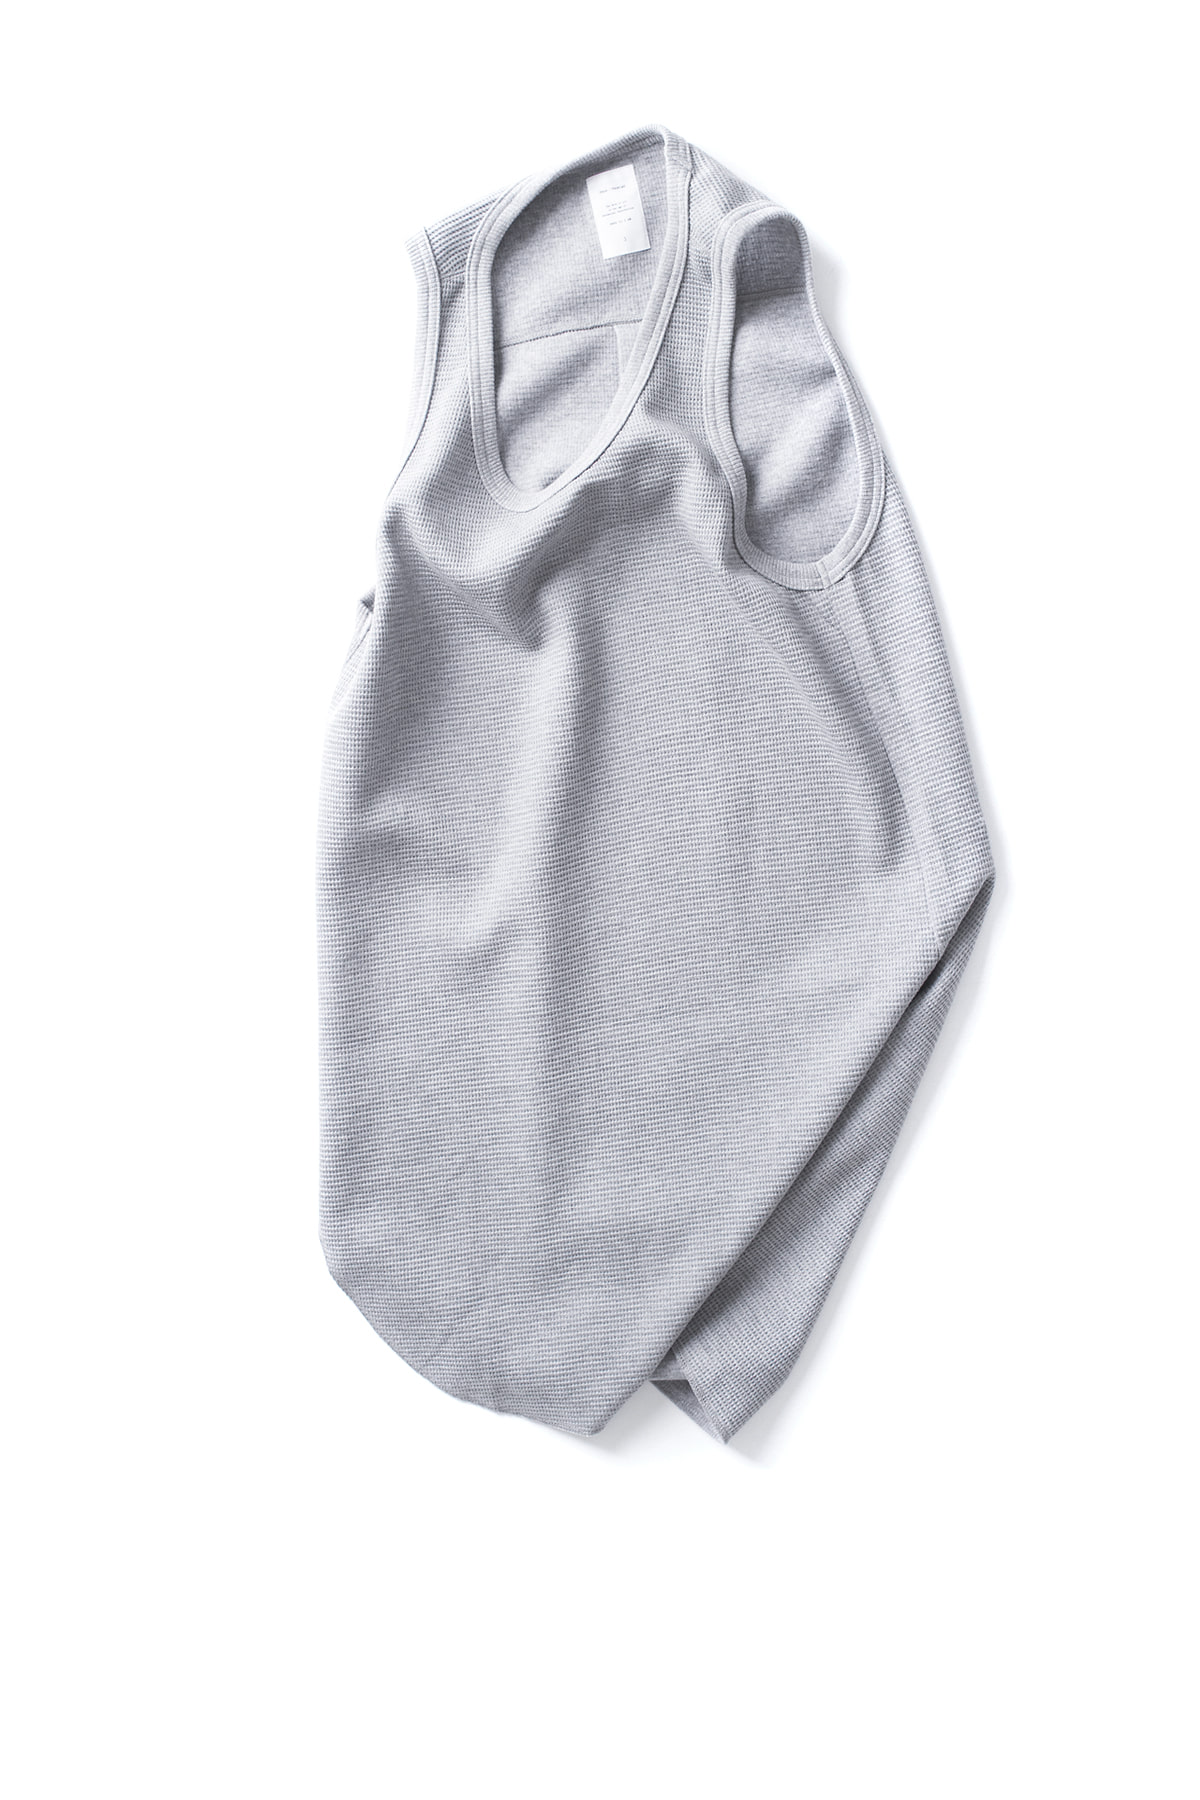 Name : Waffle Thermal Tank Top (Grey)